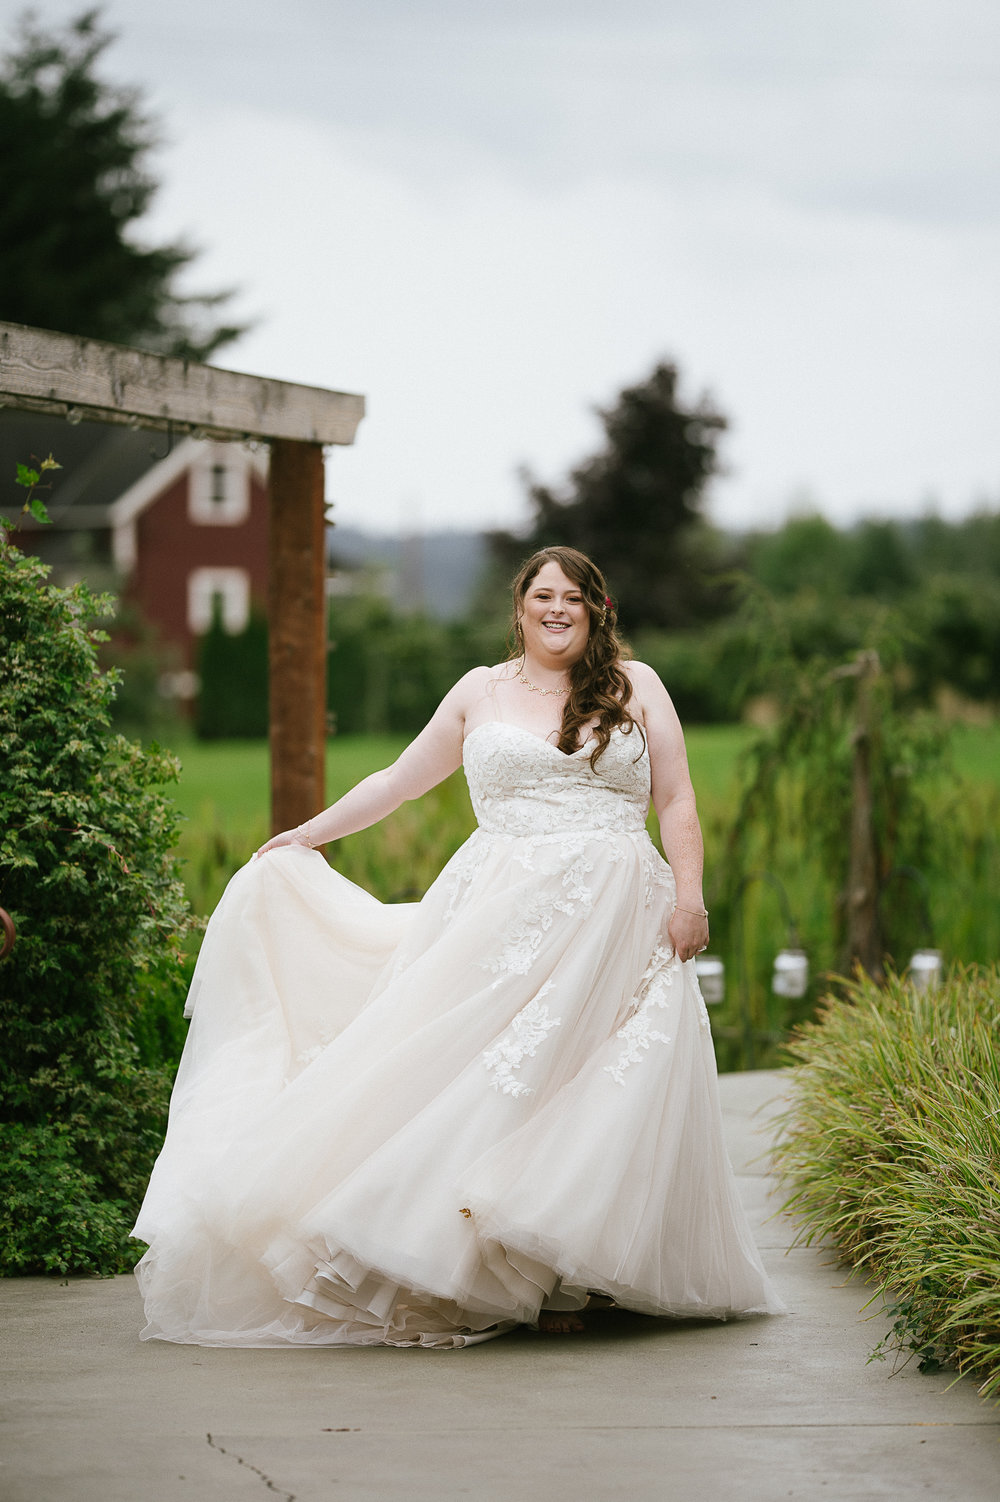 Swan Trail Farm Wedding_Sarah Schurman + Brian Skadan_Snohomish Wedding_Kelsey Lane Photography-5675.jpg